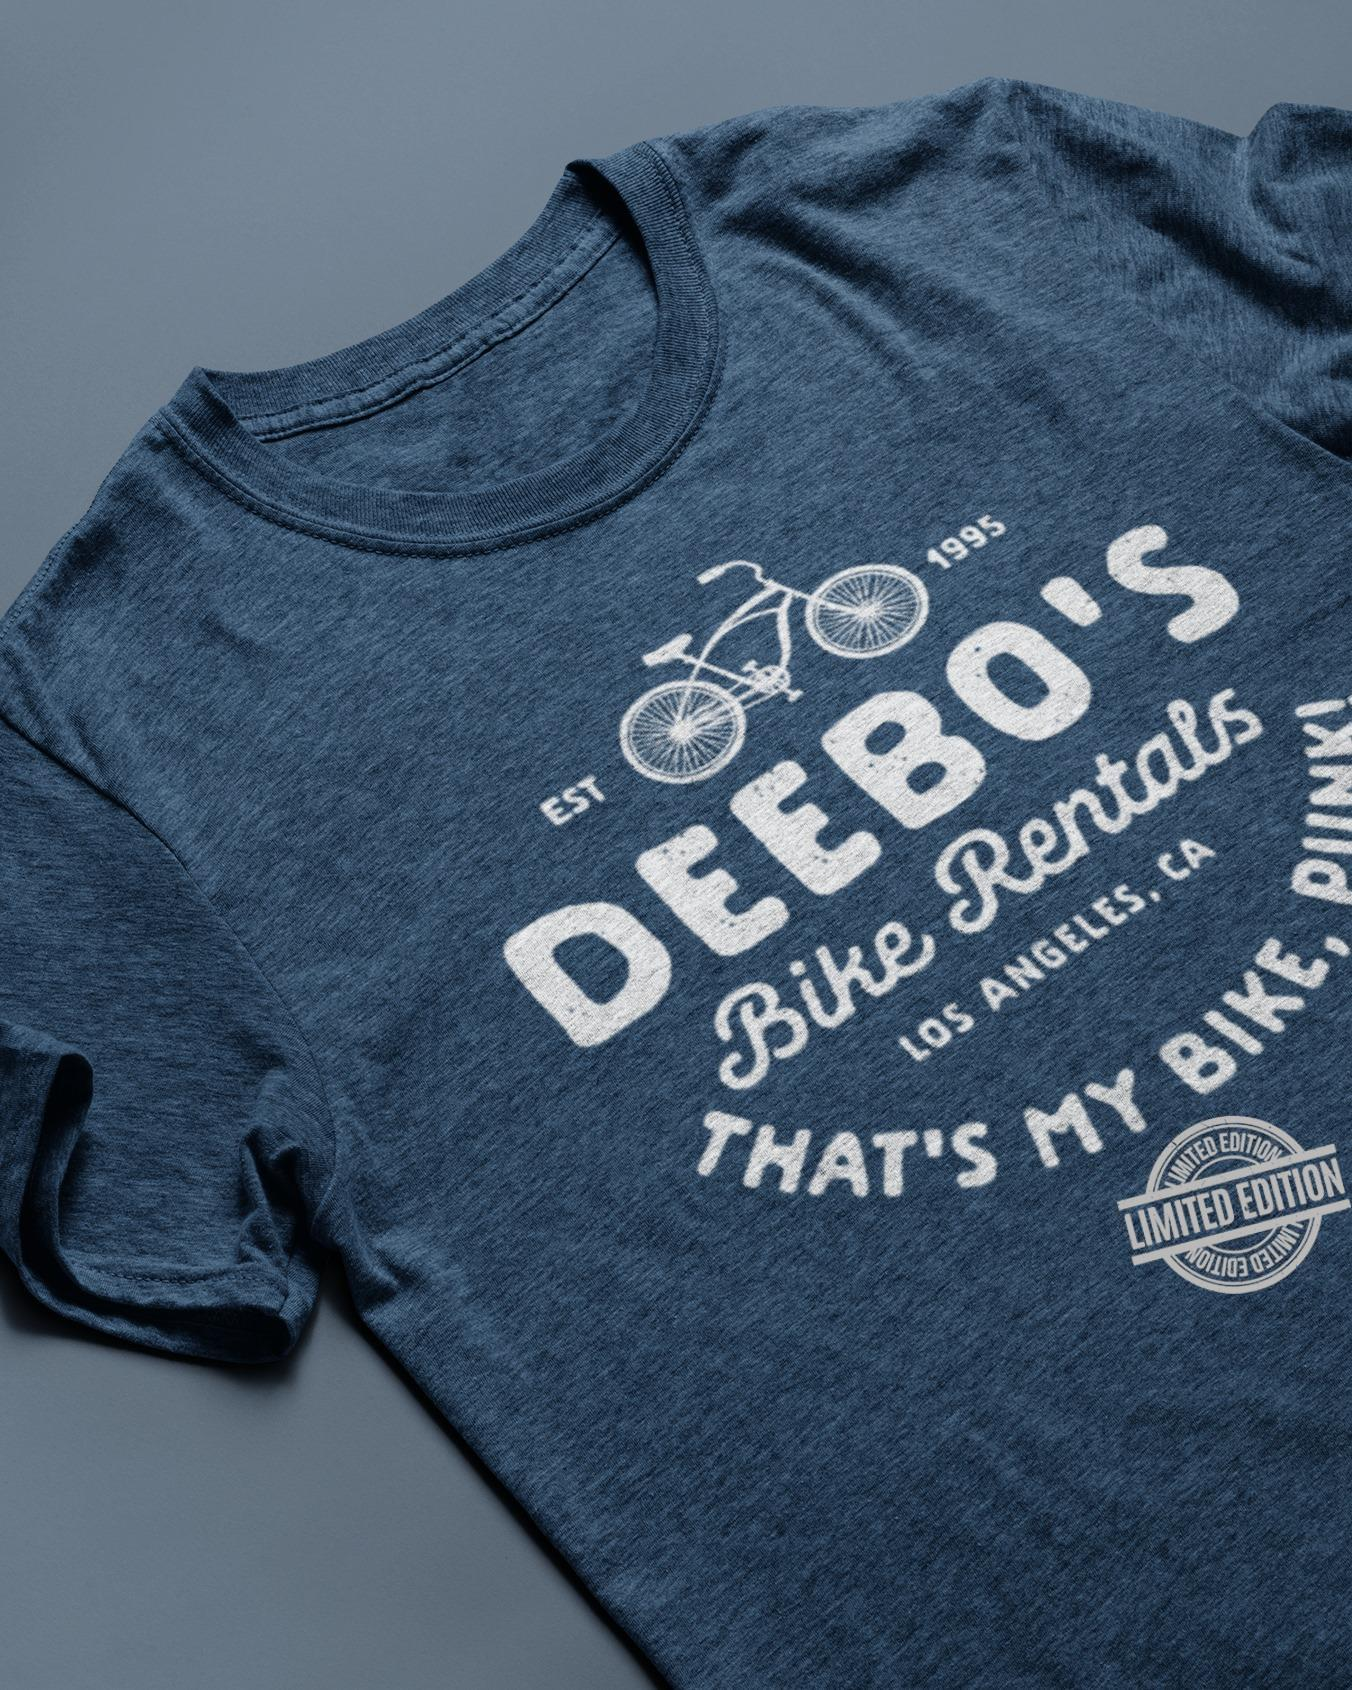 Est 1995 Deebo's Bike Rentals Los Angeles That's My Bike Punk Shirt